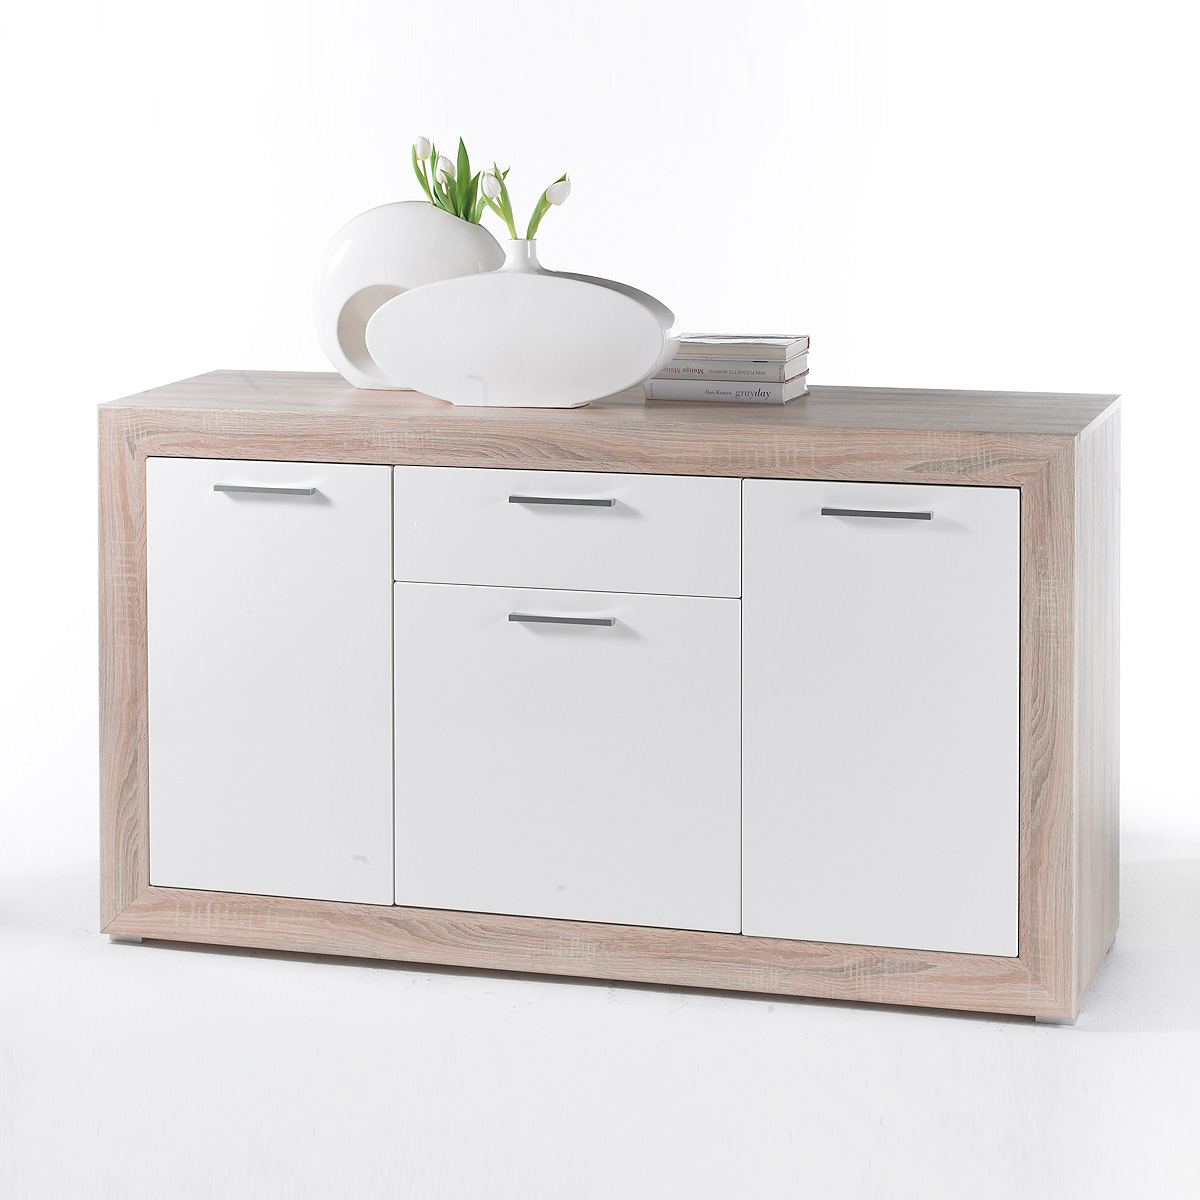 sideboard 2 fernando kommode anrichte schrank sonoma eiche wei hochglanz ebay. Black Bedroom Furniture Sets. Home Design Ideas